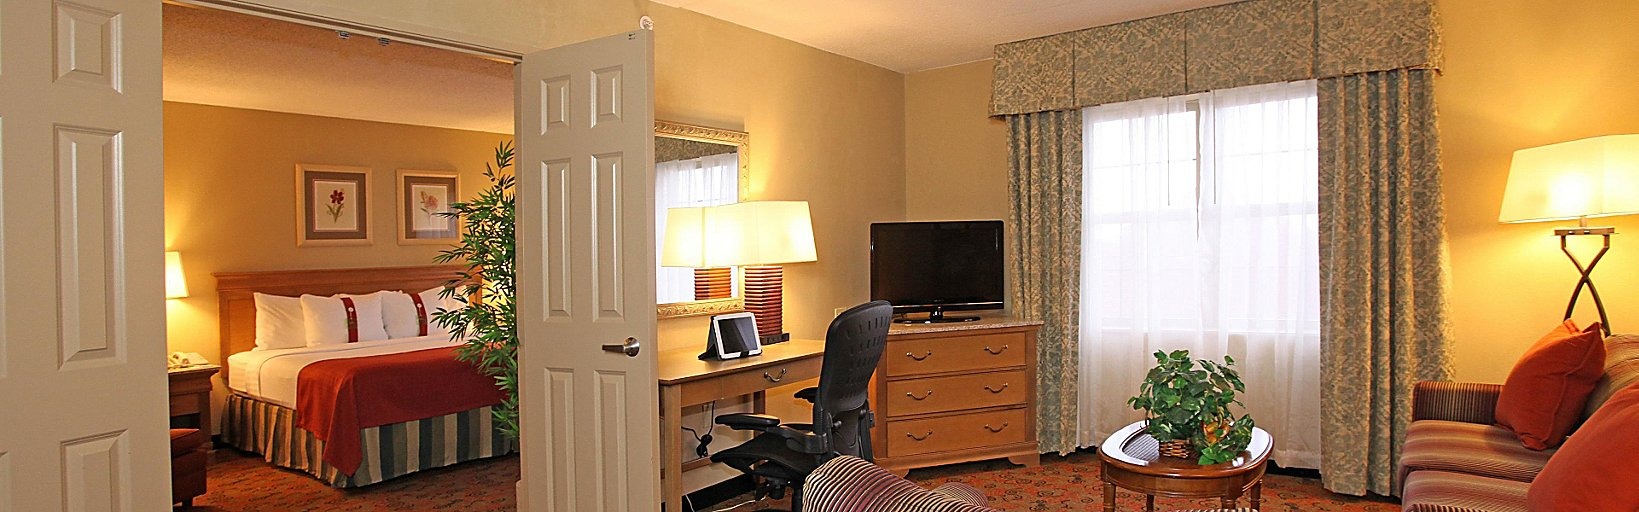 Excellent Holiday Inn Chicago Tinley Park Conv Ctr Room Pictures Home Interior And Landscaping Elinuenasavecom